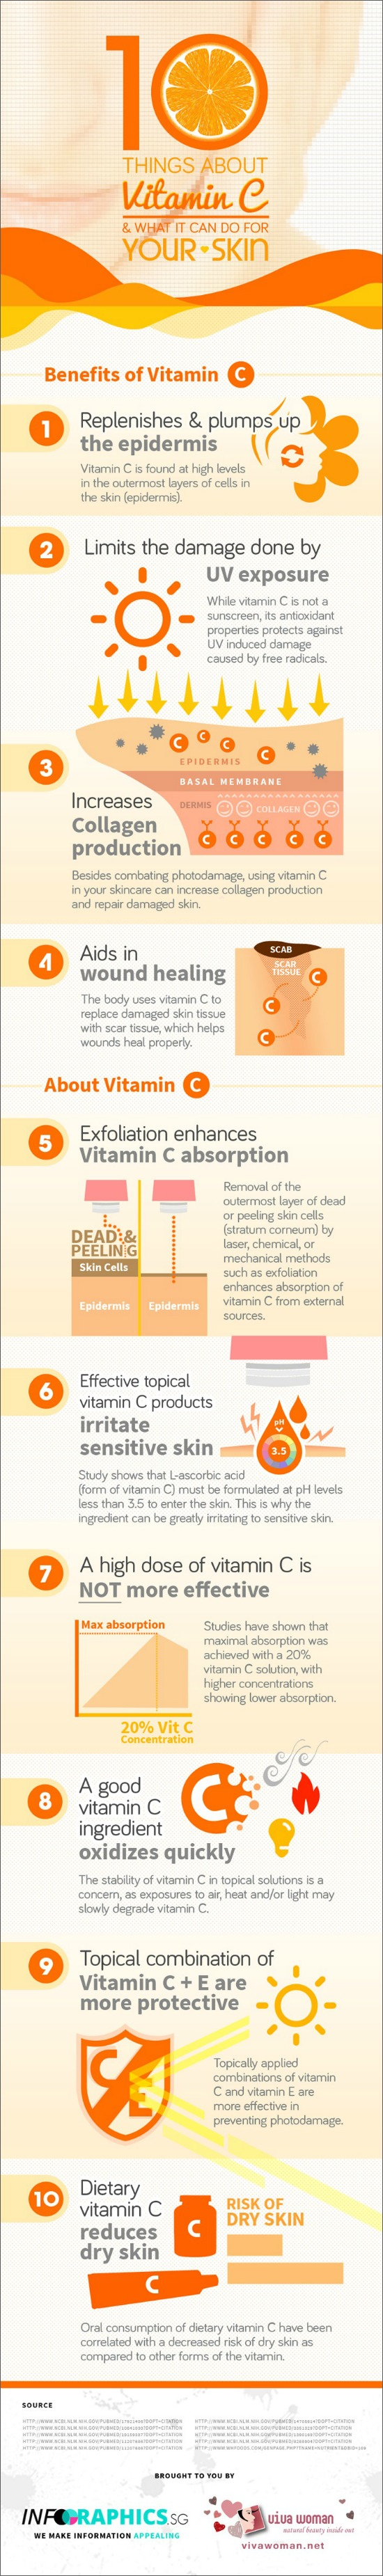 10 things what vitamin C can do for your skin